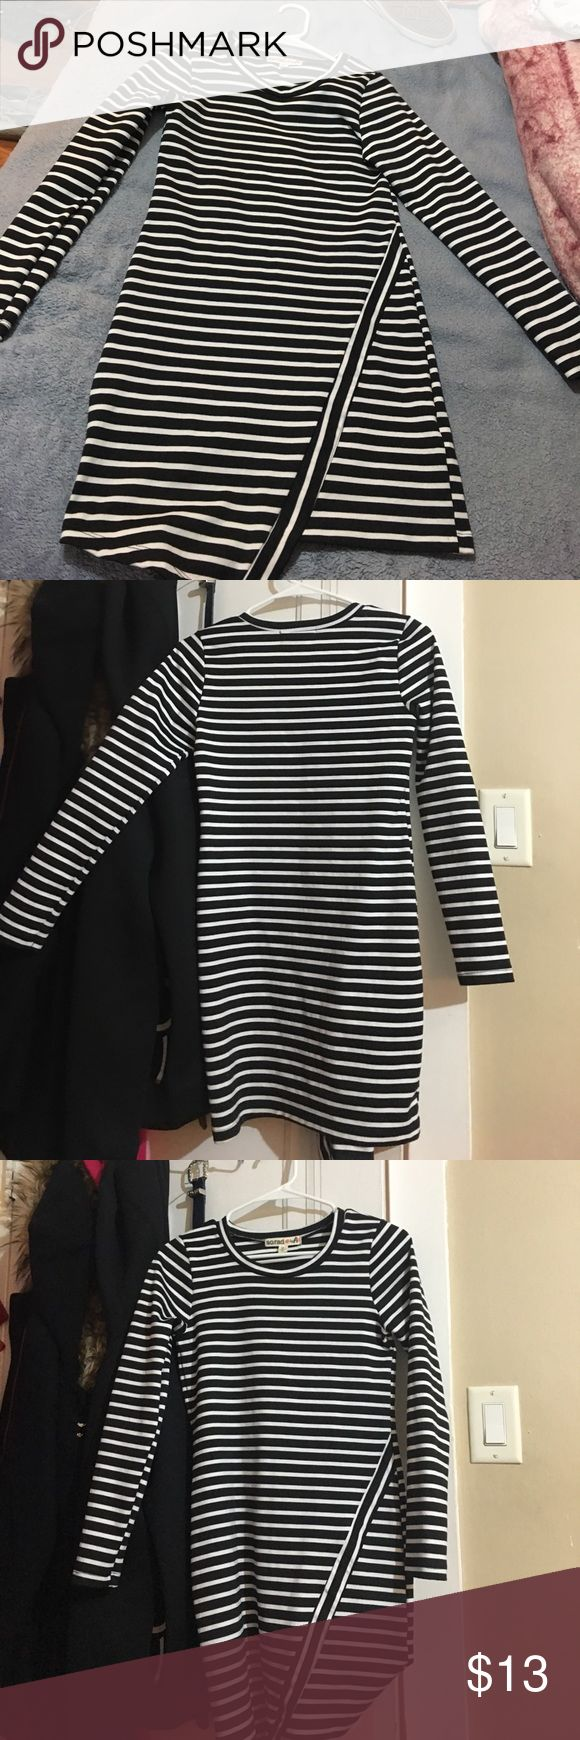 Black and white stripped long sleeve dress Black and white long sleeve dress. Only worn once. Thick material S. O. r. a. d  Dresses Midi